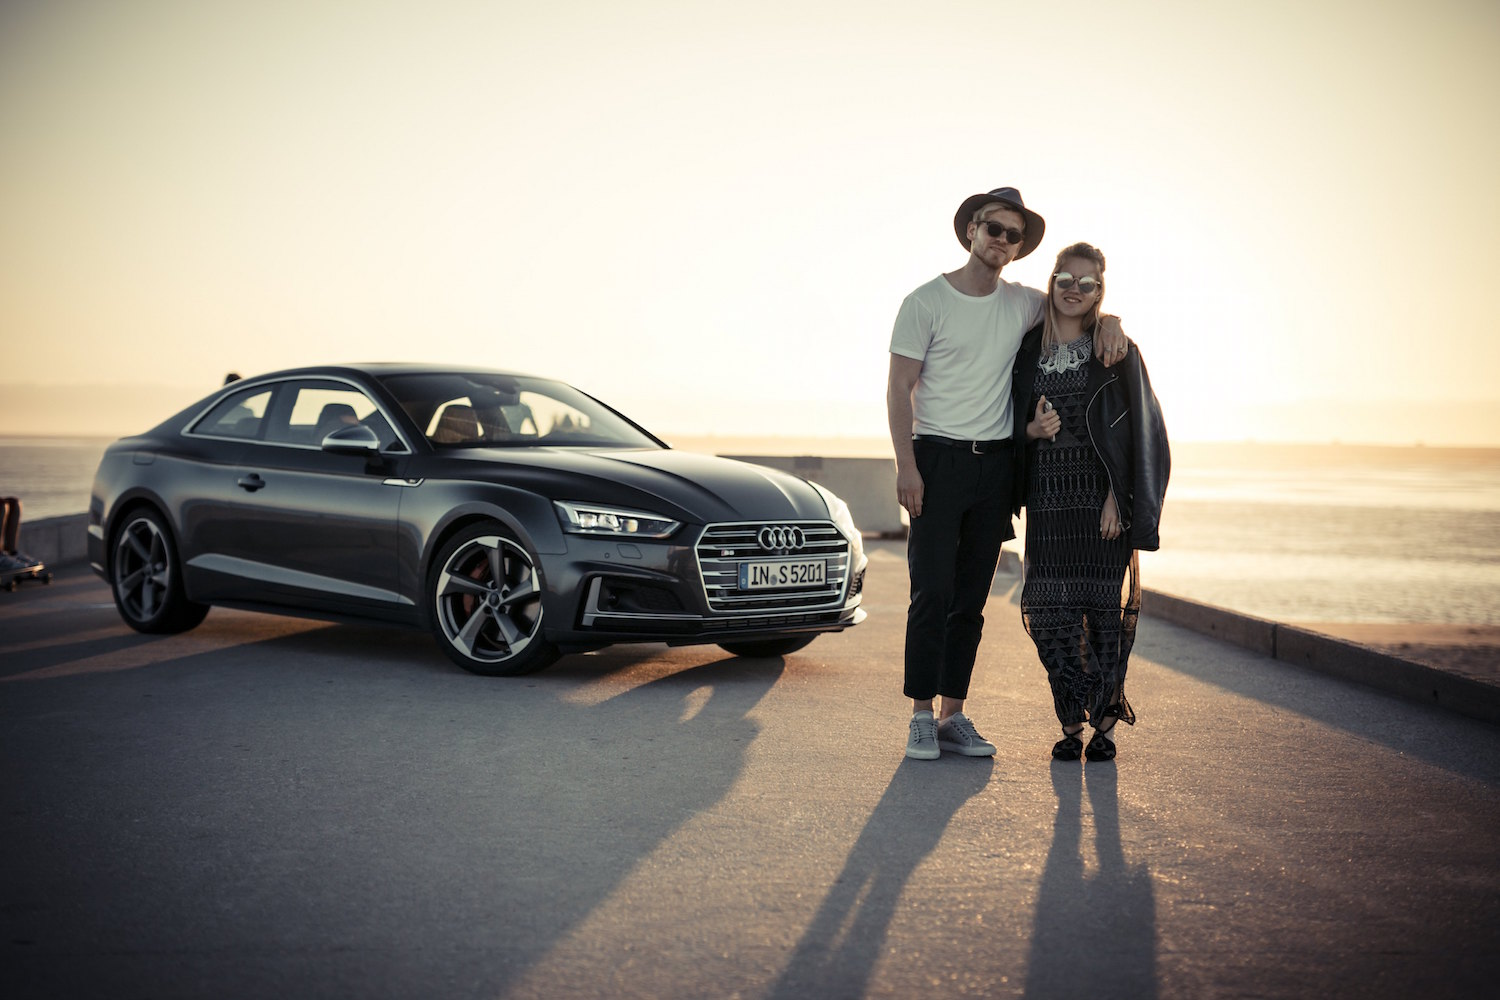 Meanwhile in Awesometown Austrian Mens Fashion and Lifestyle Blogger Das neue Audi A5 Coupe Testfahrt durch Nordportugal Porto bis Aveiro_14